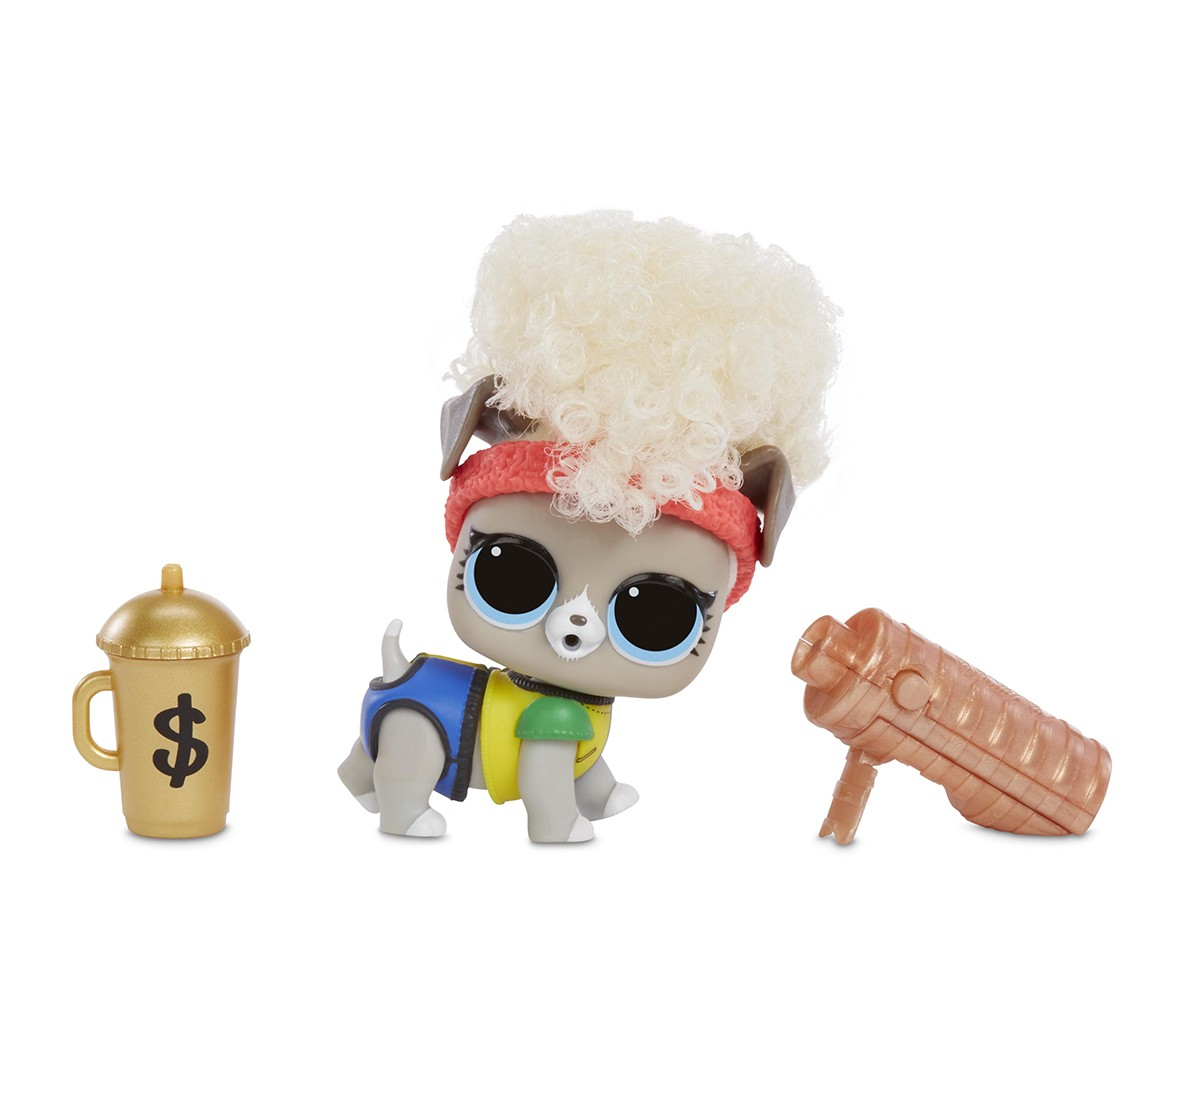 LOL Surprise Lights Pets, Collectible Dolls for Girls age 3Y+ (Assorted)